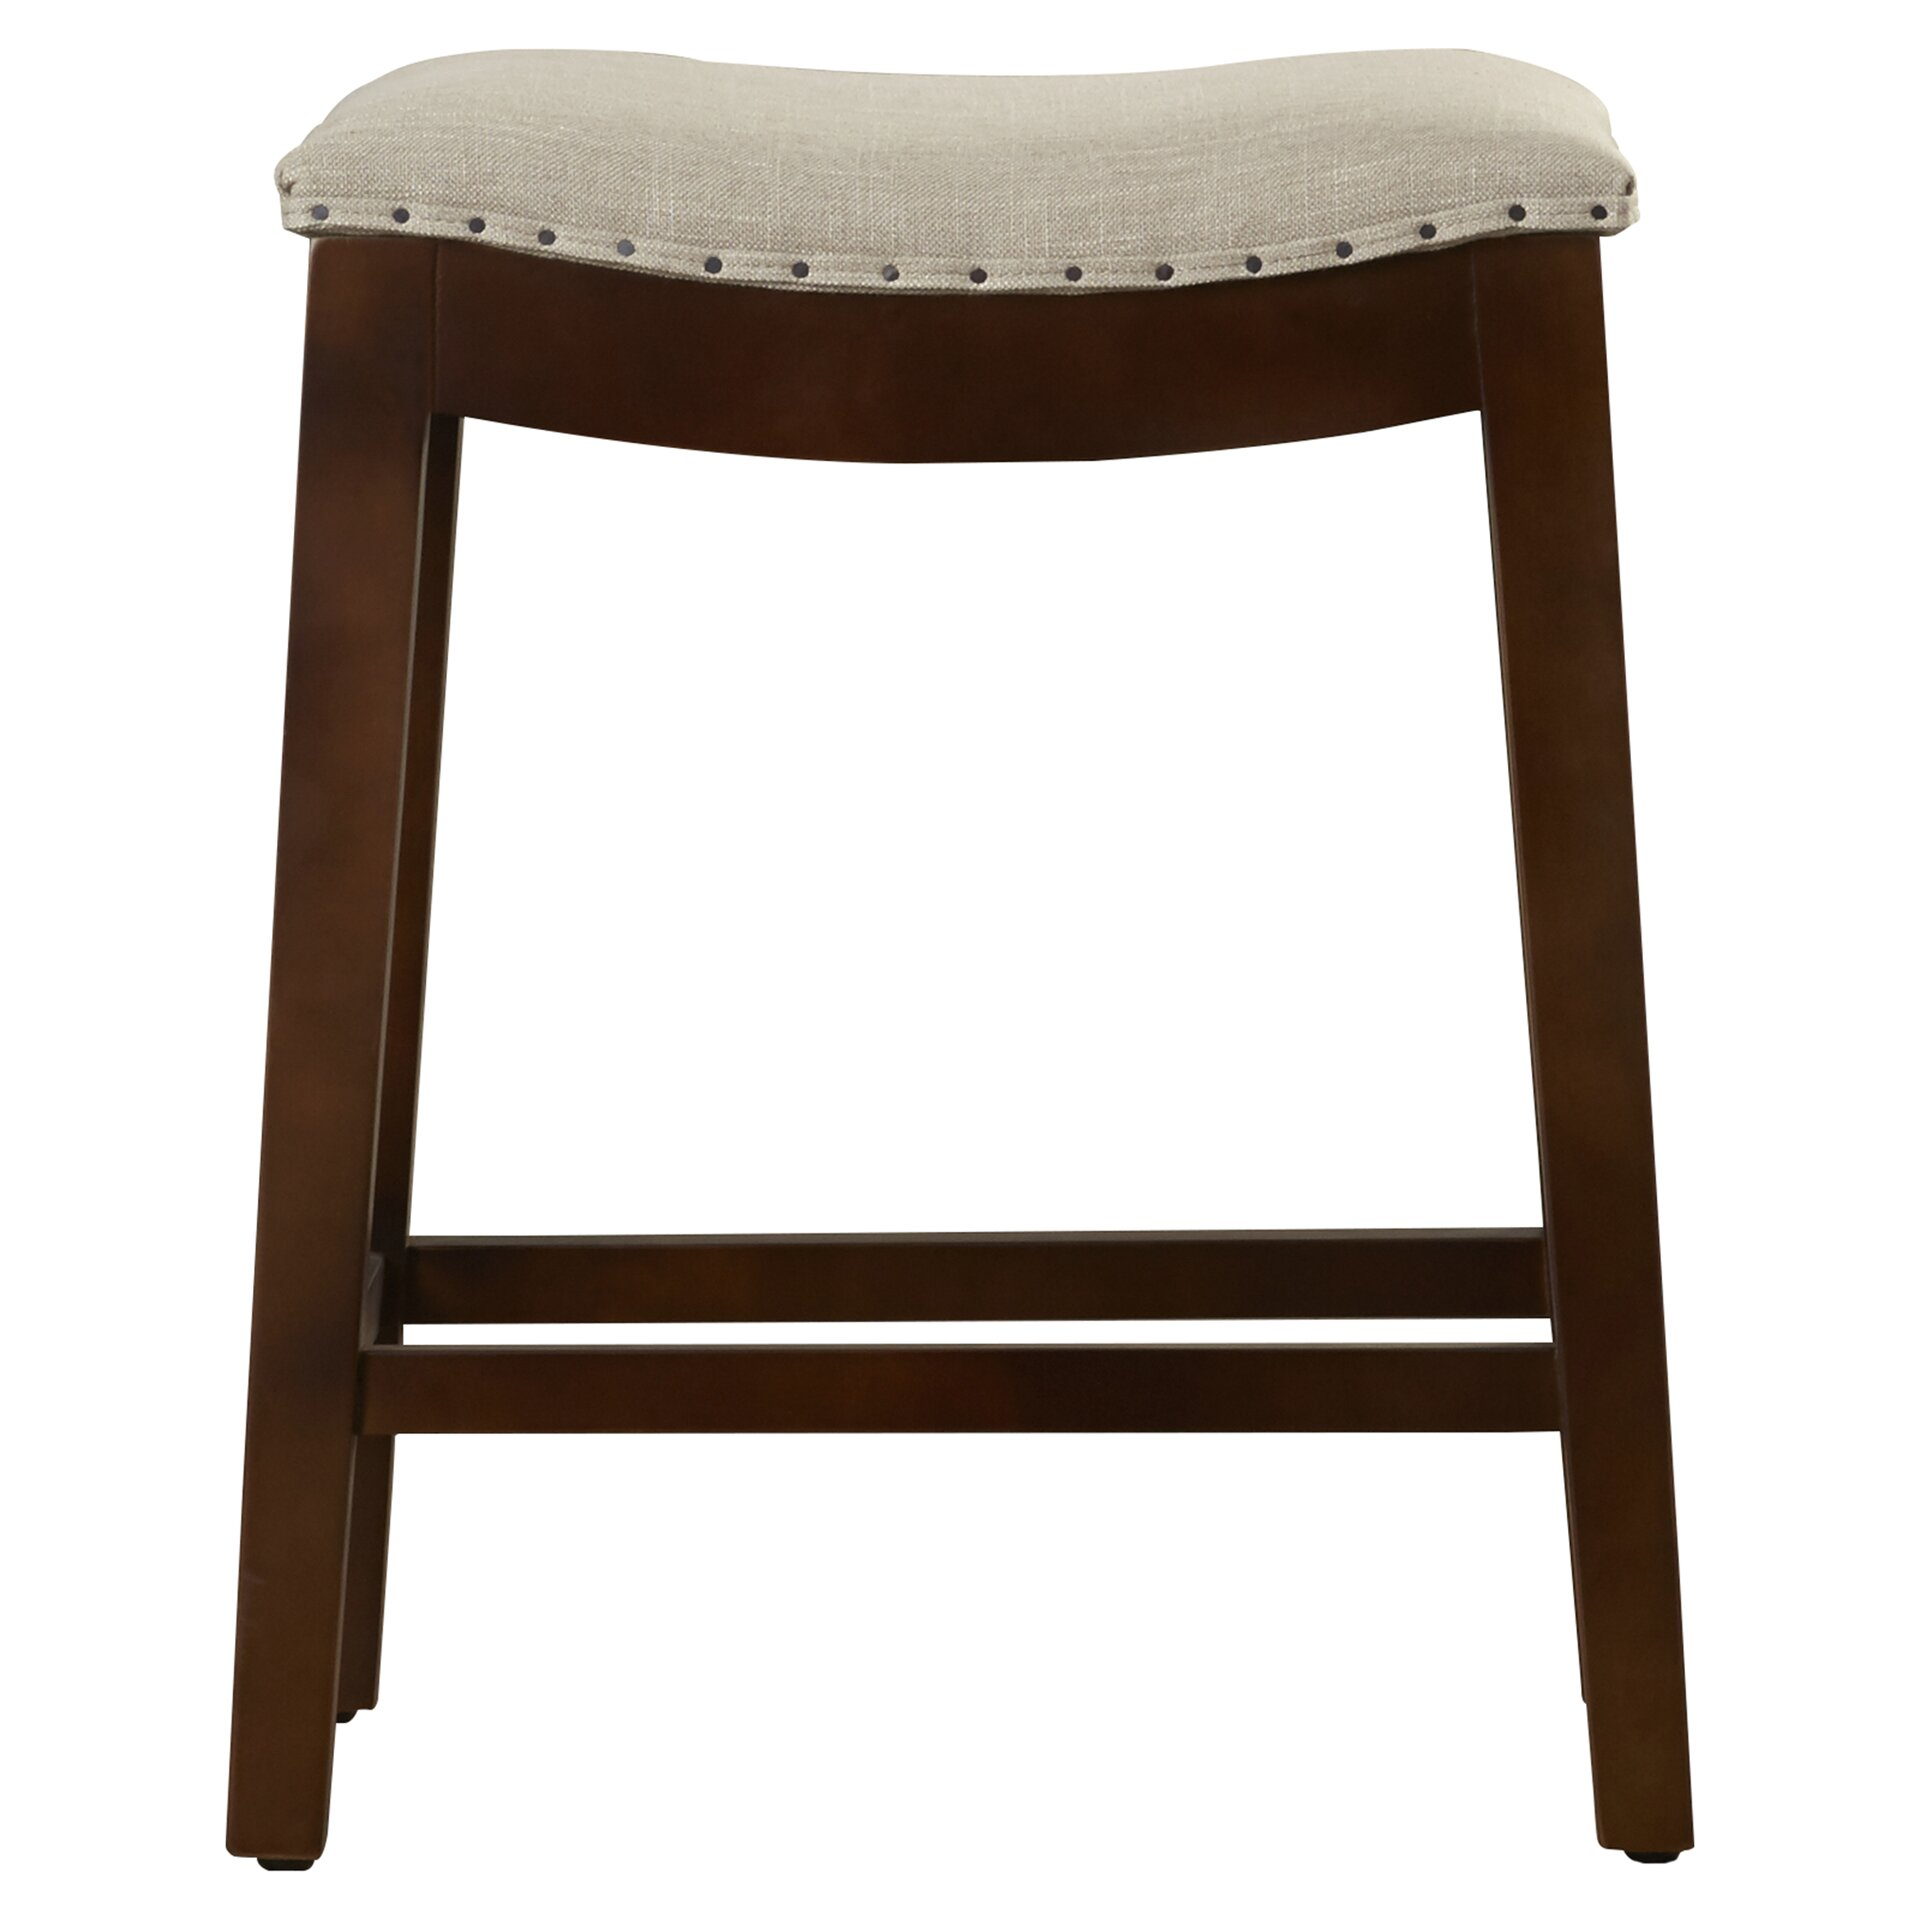 Alcott Hill Stoutsville 24quot Bar Stool with Cushion  : 24 Bar Stool with Cushion ALCT2456 from www.wayfair.ca size 1920 x 1920 jpeg 229kB